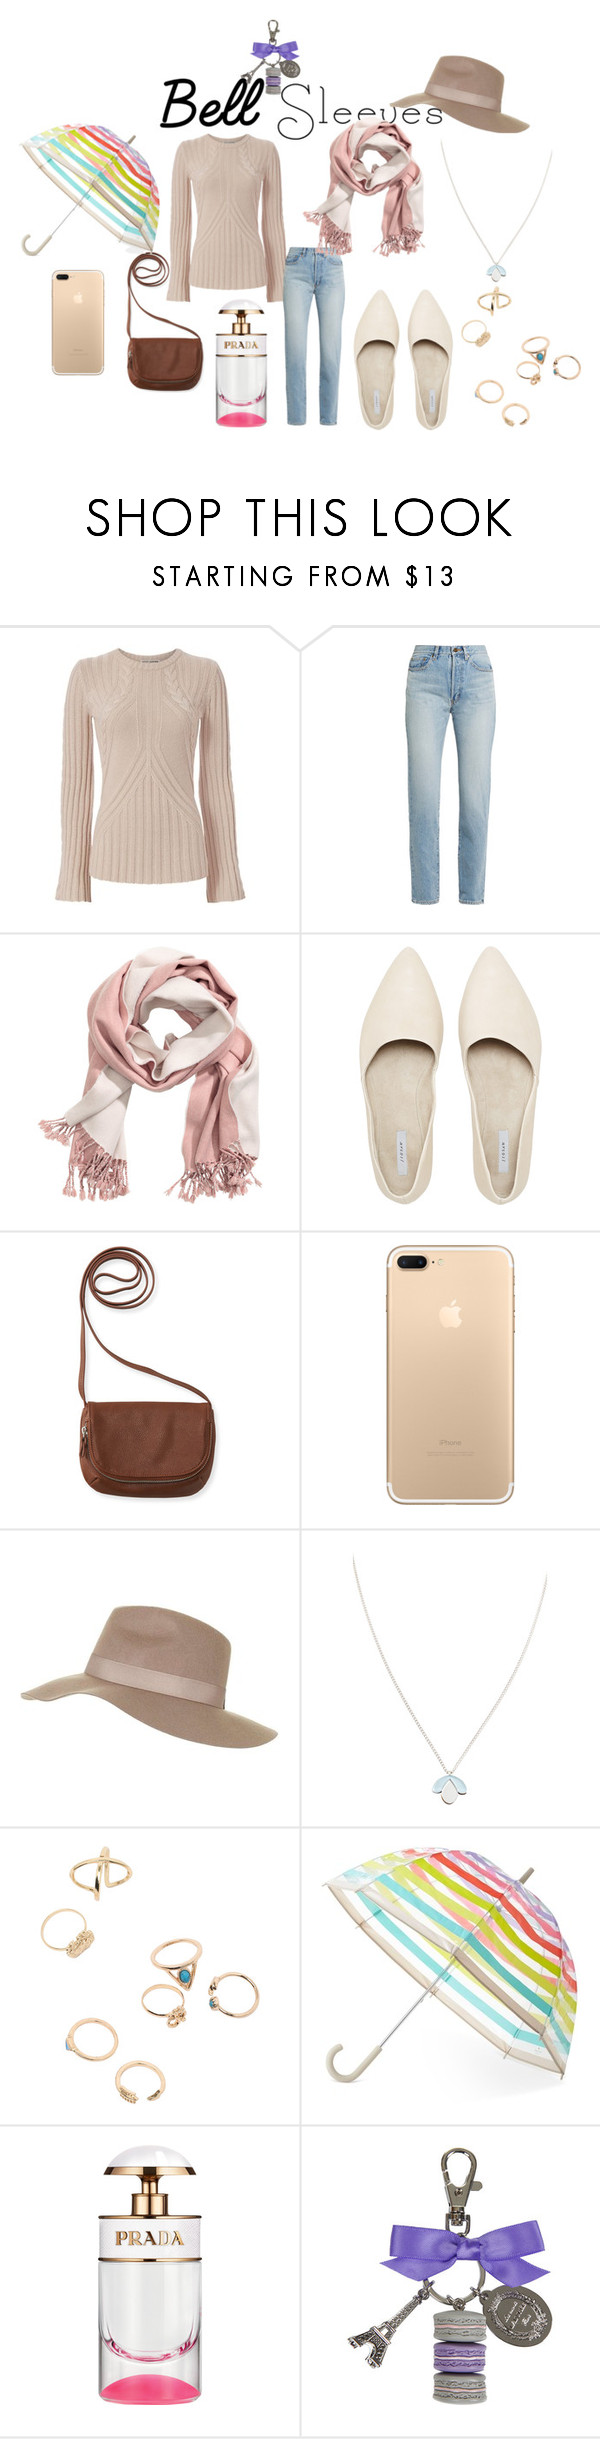 """Bell Sleeves"" by blancheflor ❤ liked on Polyvore featuring Autumn Cashmere, Yves Saint Laurent, Aéropostale, Topshop, Wolf & Moon, Kate Spade, Ladurée, Fall, outfit and chic"